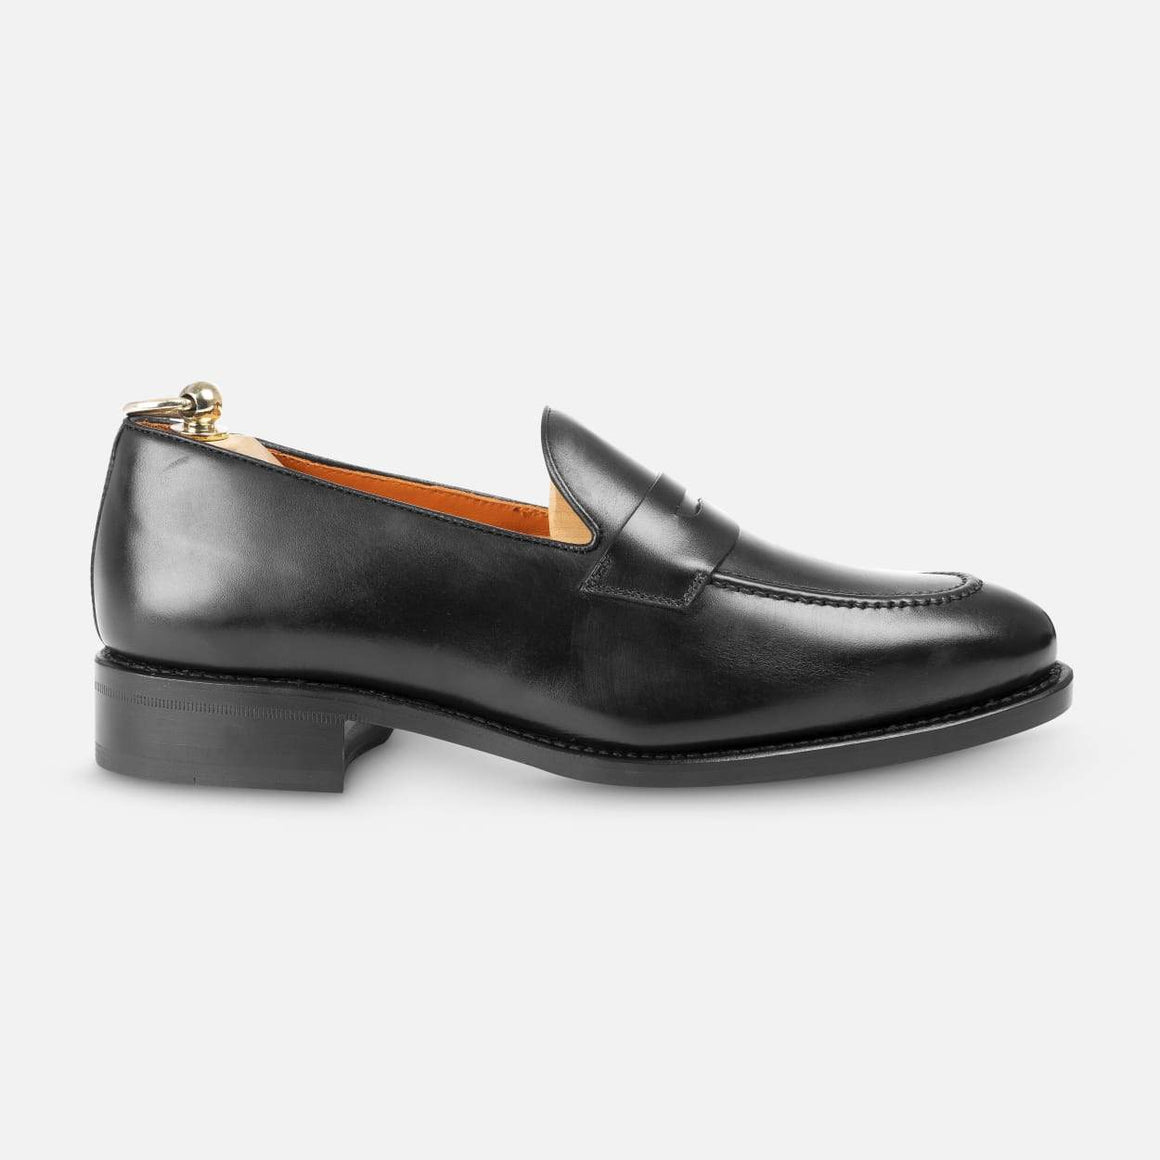 Loafers in Black - Uwamarket